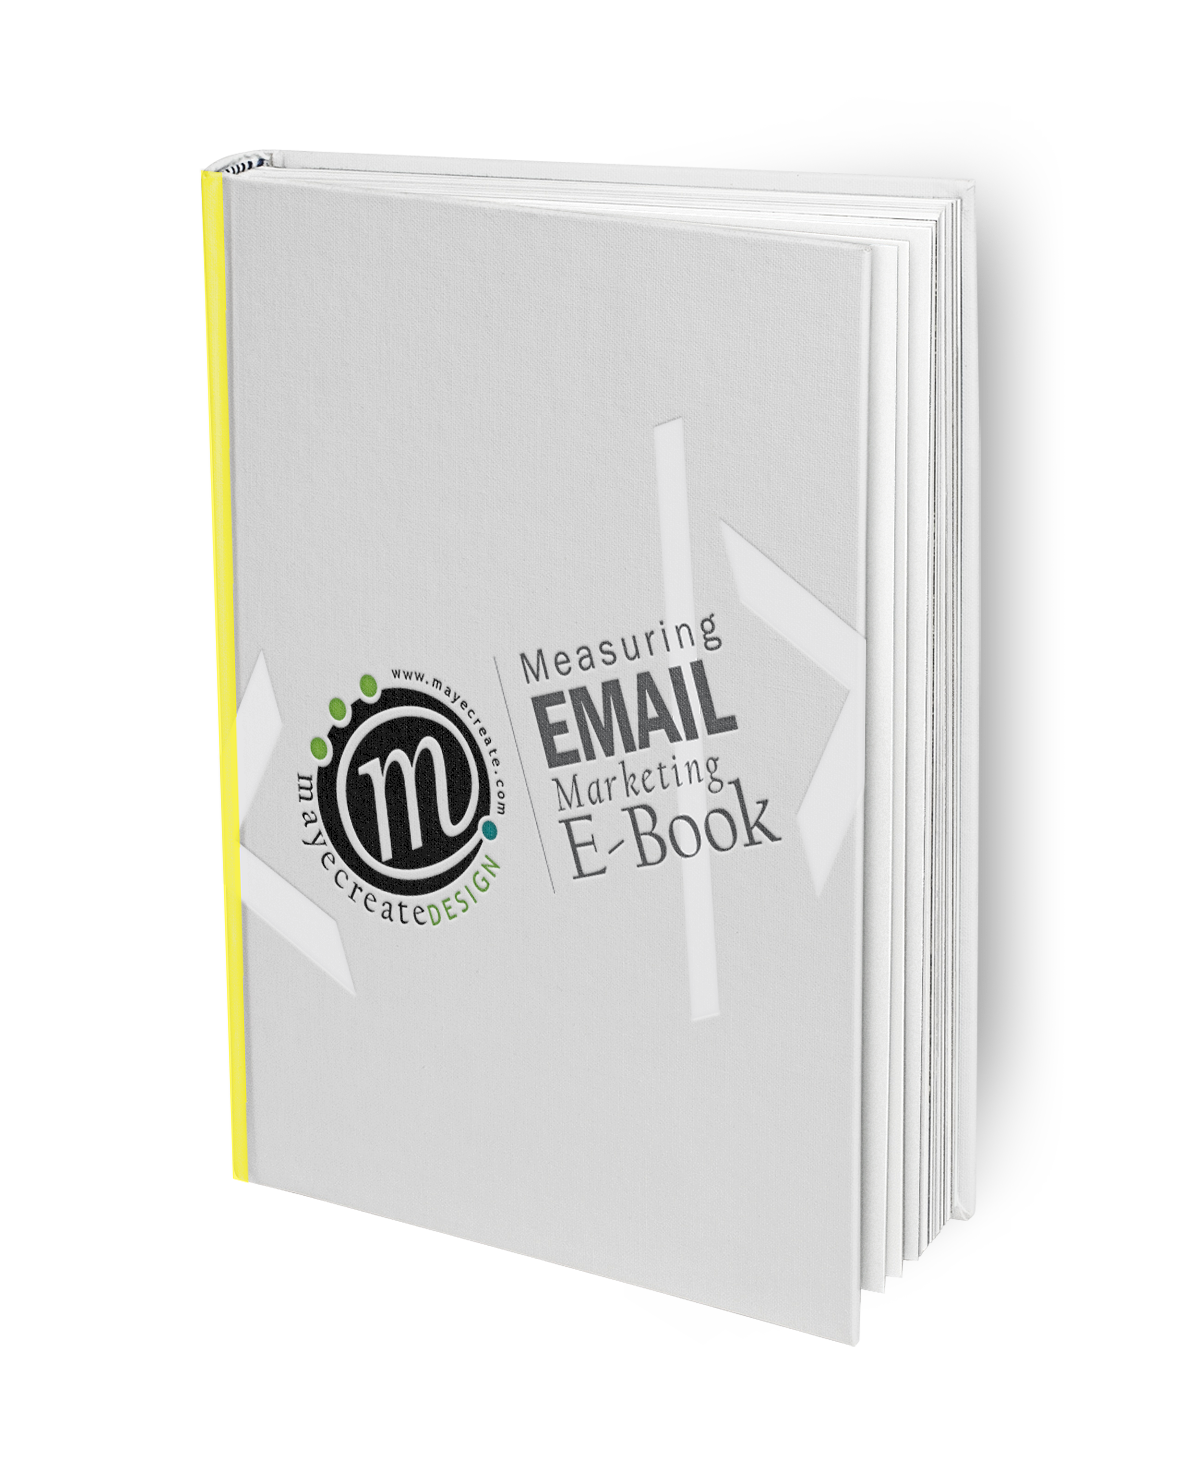 Measuring Email Marketing E-Book